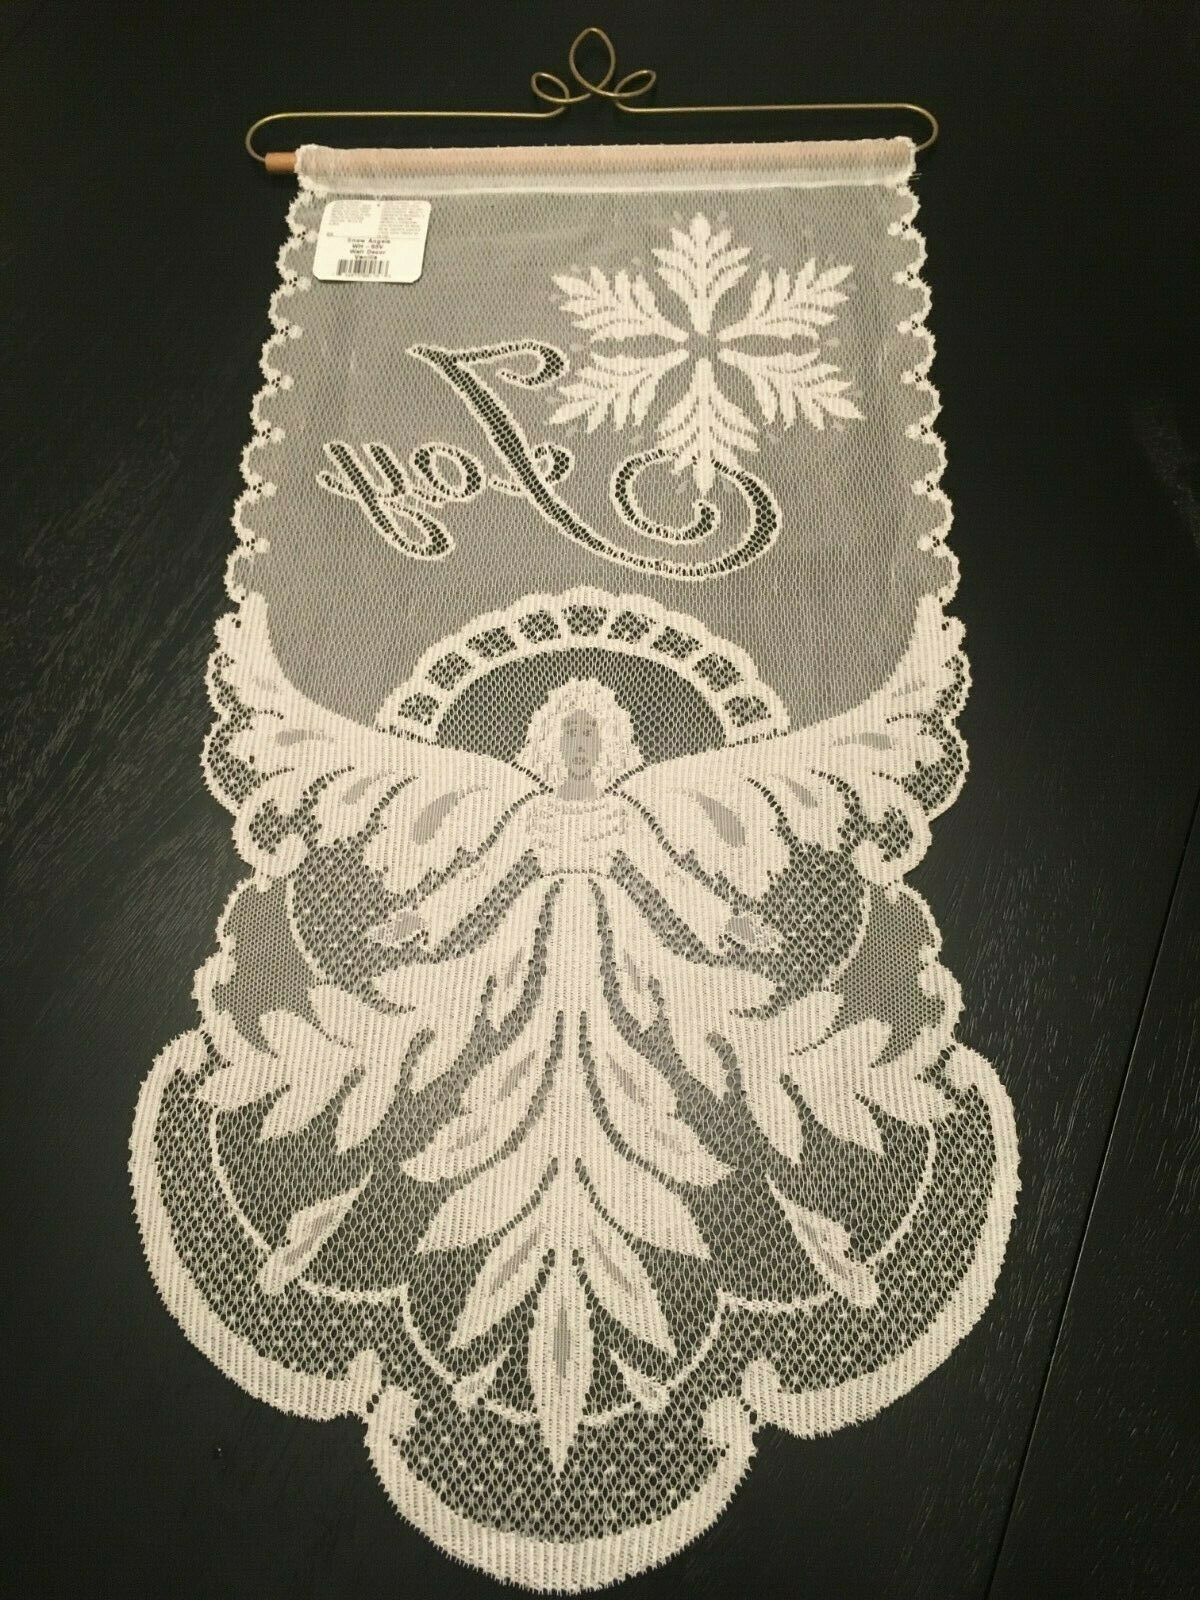 Heritage Lace Snow Angels Joy Wall Hanging Christmas Holiday Home Decor NWT